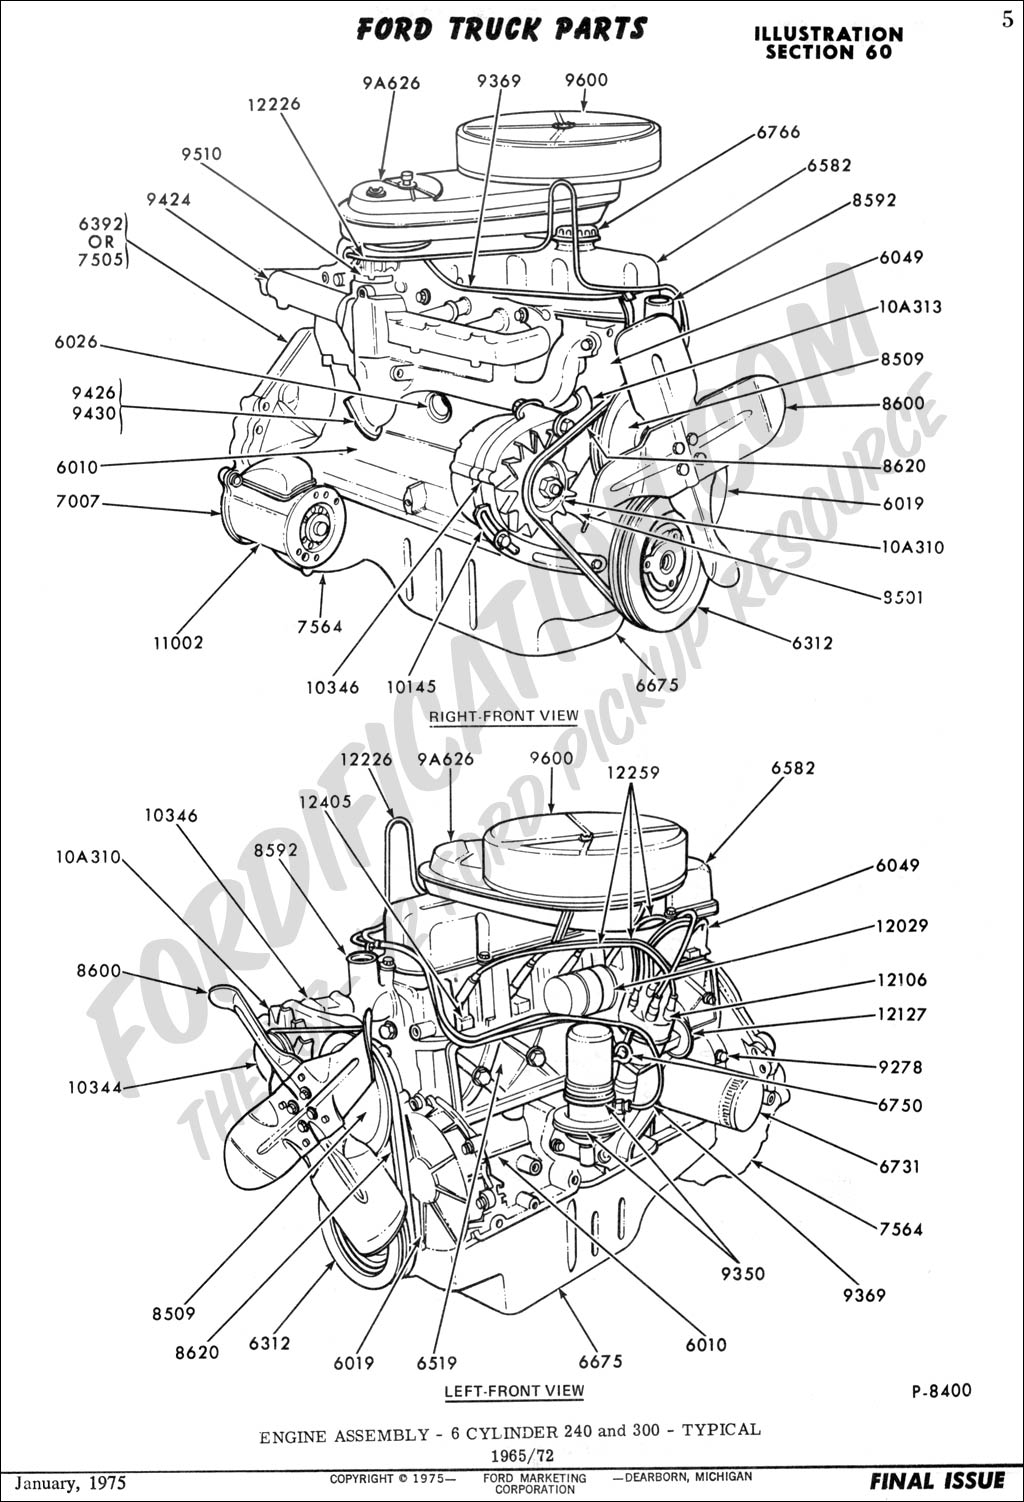 Ford F 150 Why Is My Emergency Brake Stuck 356397 in addition 1489457 Proportioning Valve further Wiring Diagram 2004 Chevy Silverado Radio The Wiring Diagram 3 furthermore Ford Wiring Diagram For Trailer Plug as well 1991 F150 Xlt Lariat Dual Tank Fuel Wiring Diagram. on 2003 ford super duty wiring diagram